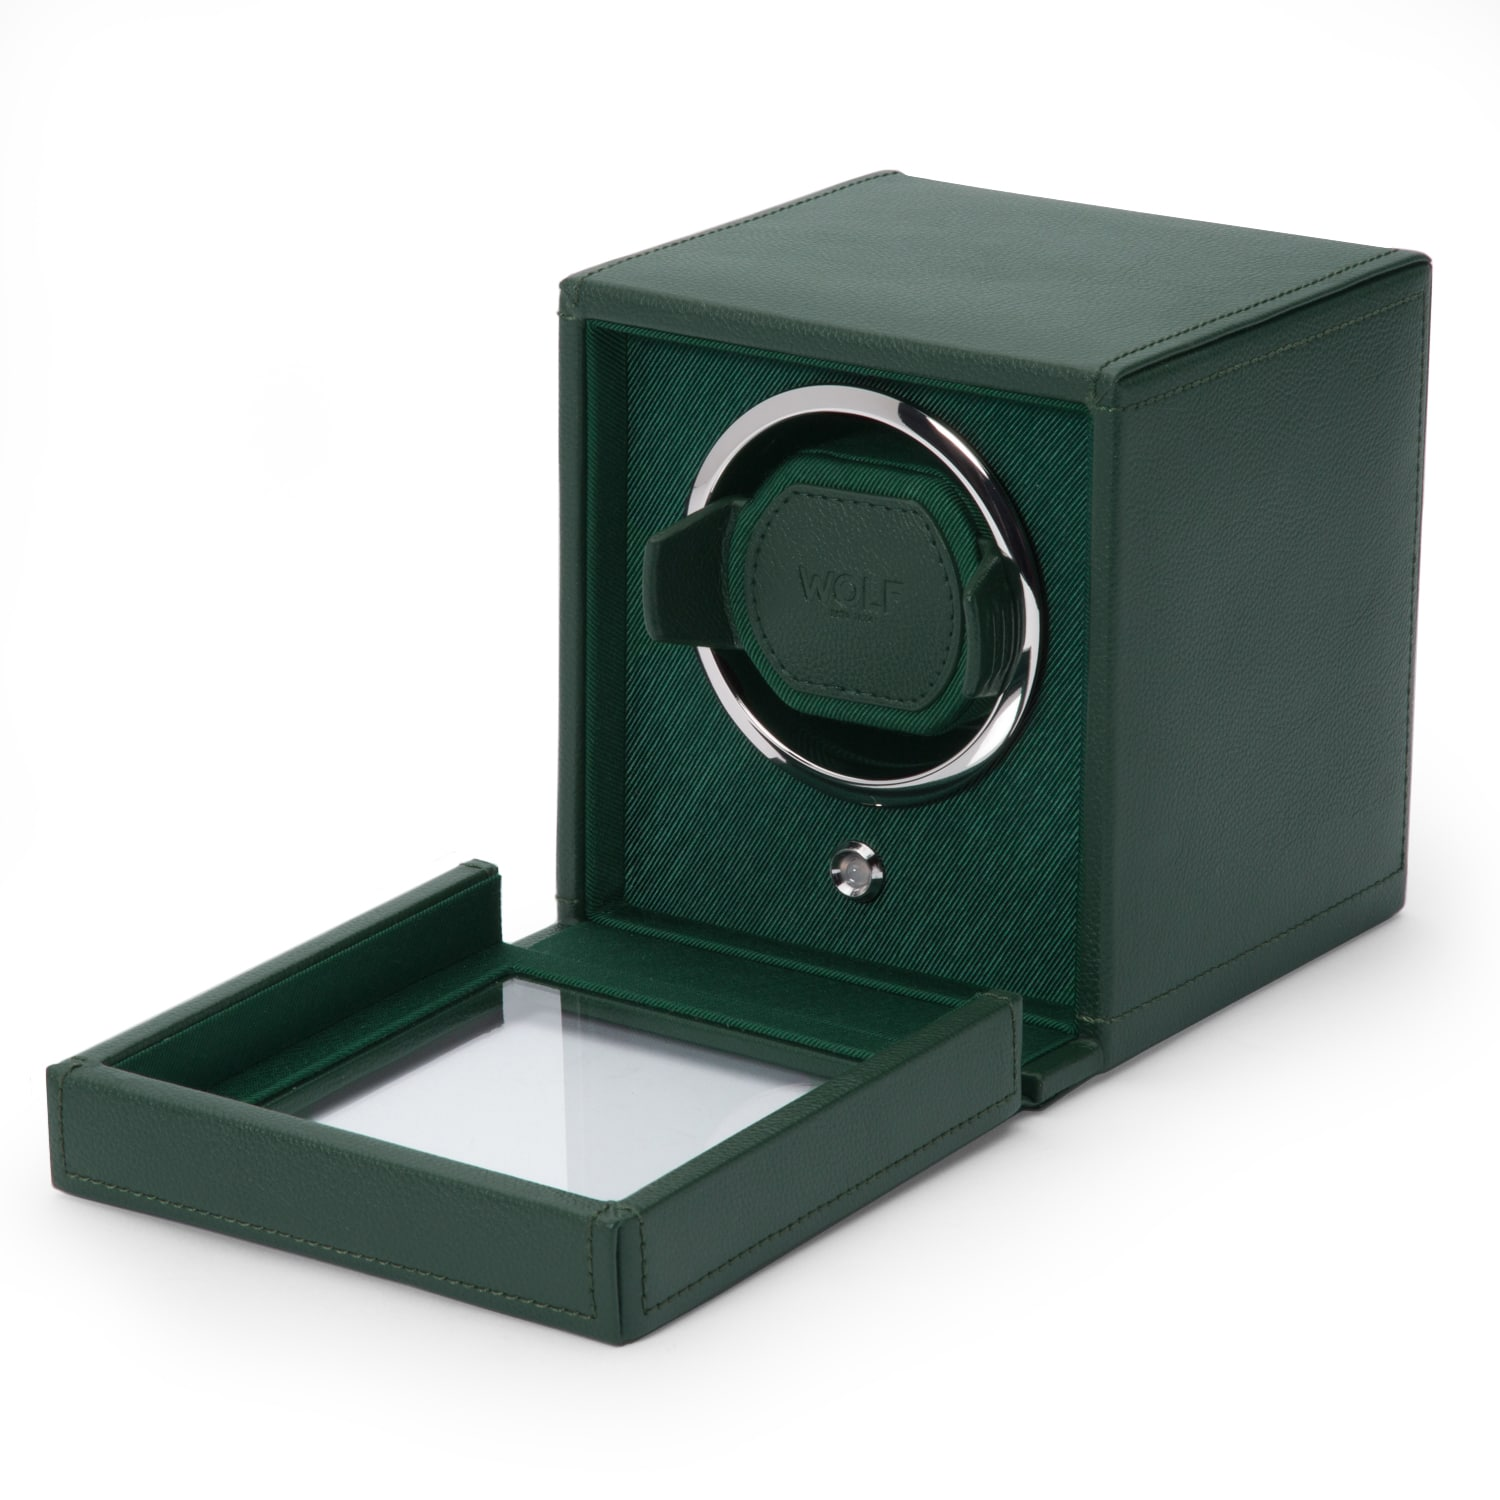 WOLF Cub Winder With Cover Green